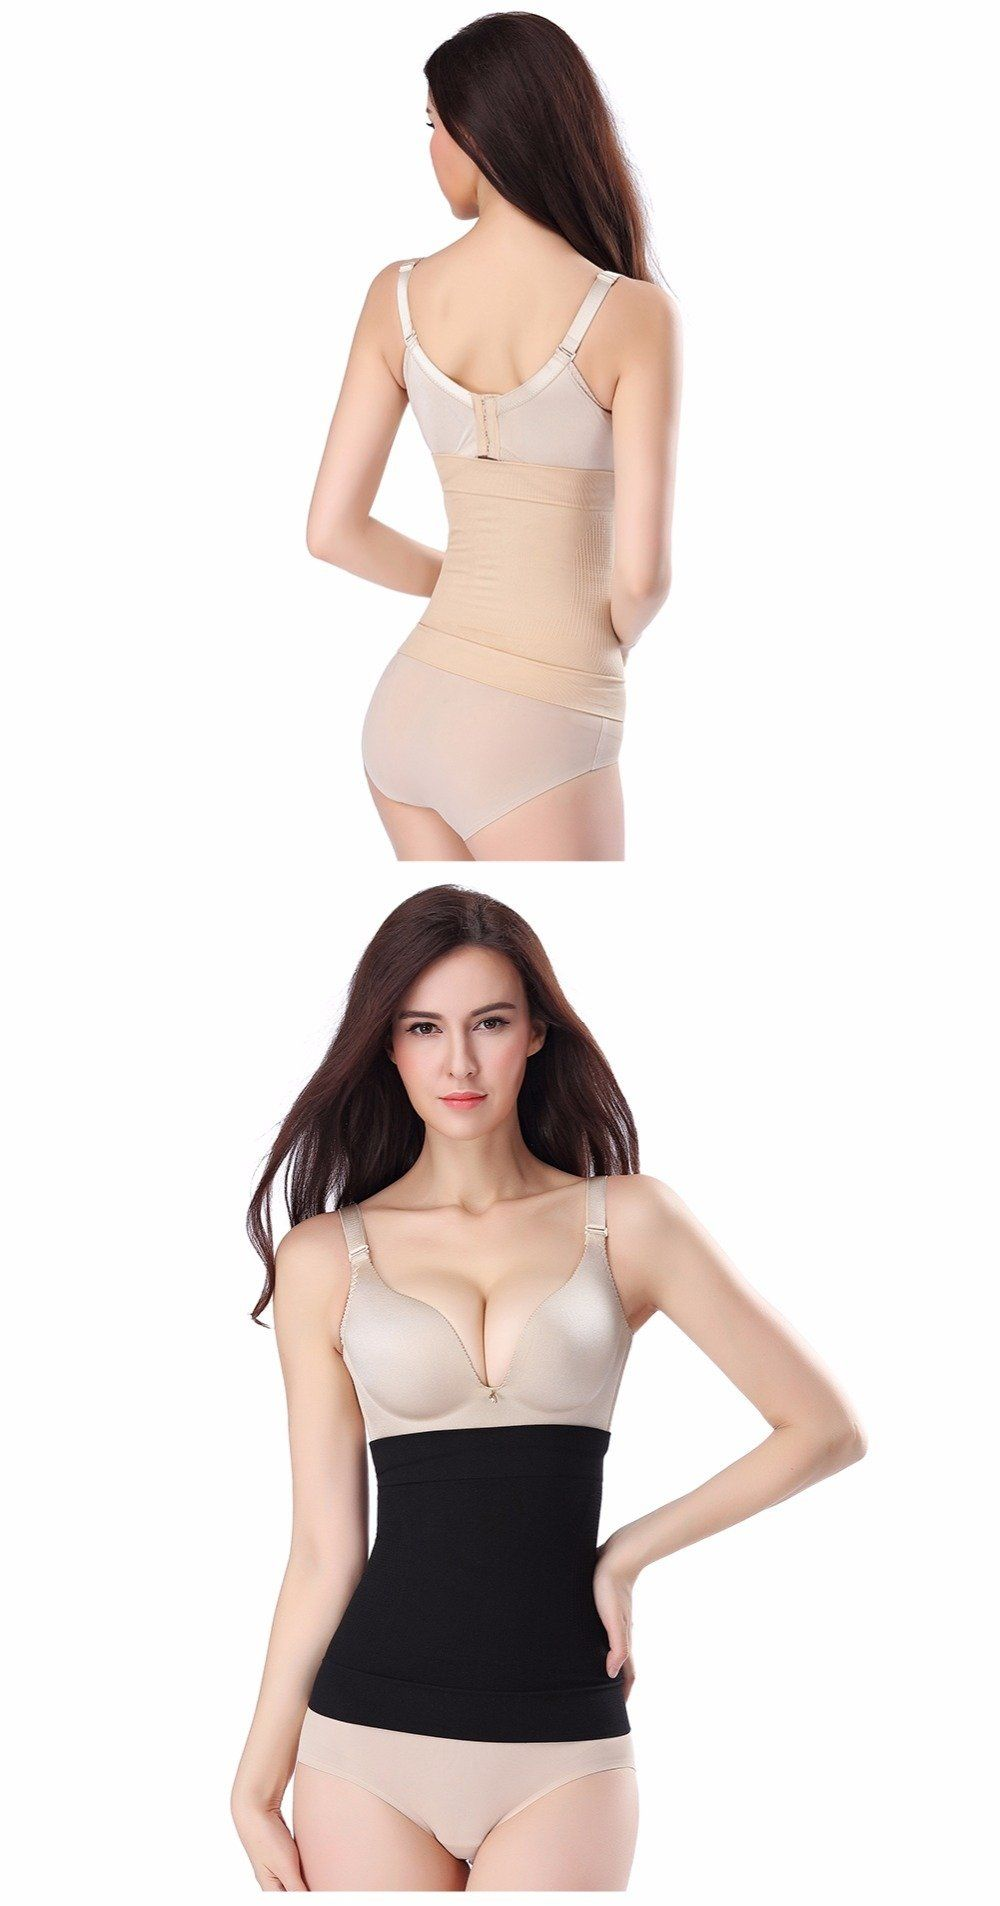 5301746e0bfb2 Tummy Slimming Waist Trainer Bodysuit Slimming Corset Body Shaper Slimming  Underwear For Women